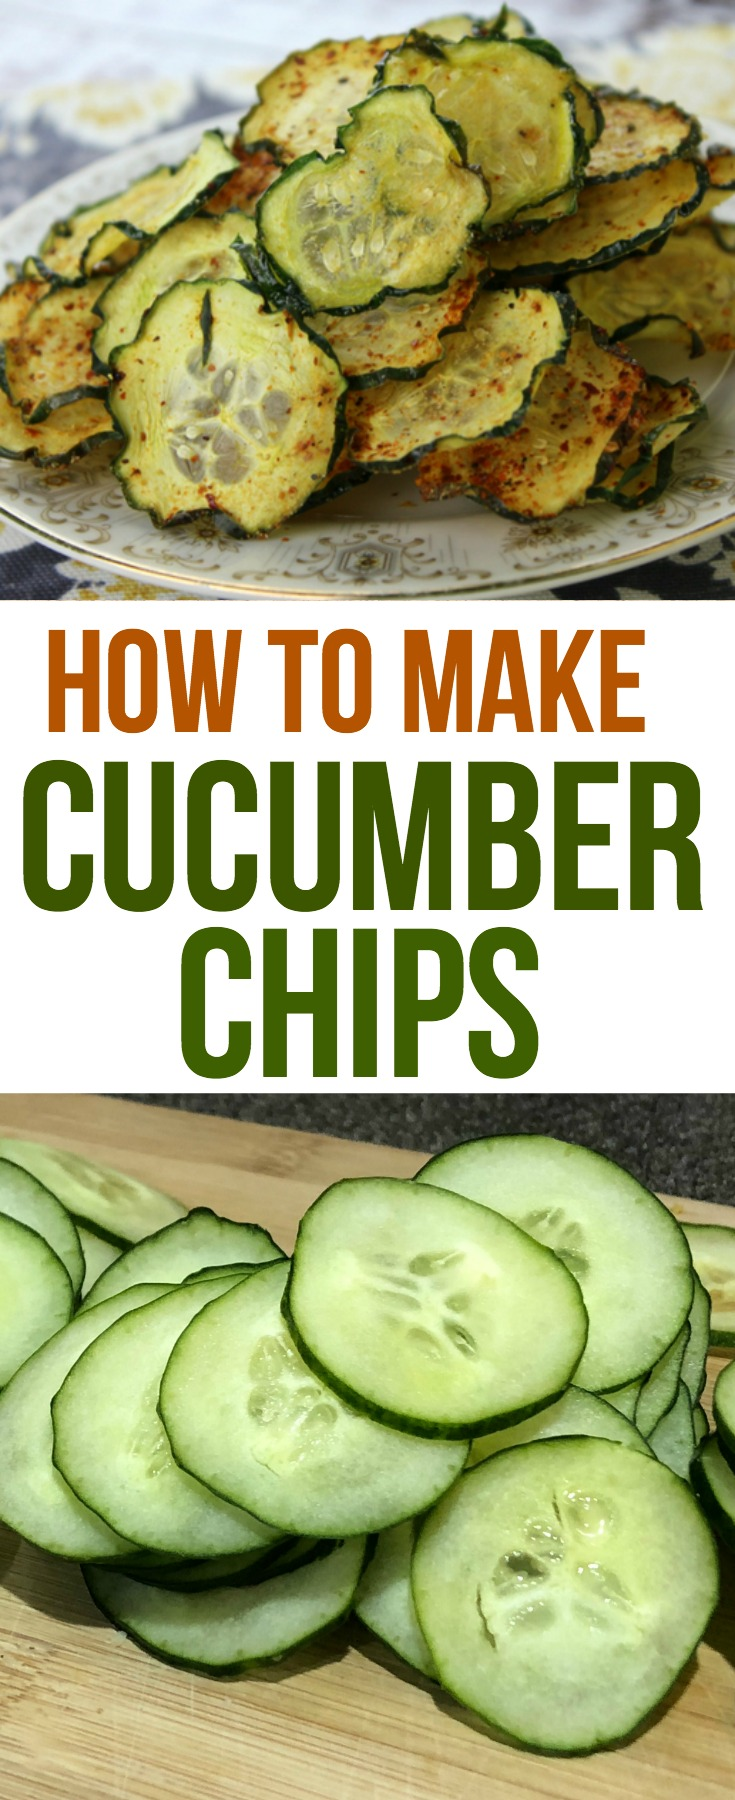 Cucumber Chips are easy to make and are delicious and healthy at the same time. They are the perfect snack for kids and adults.